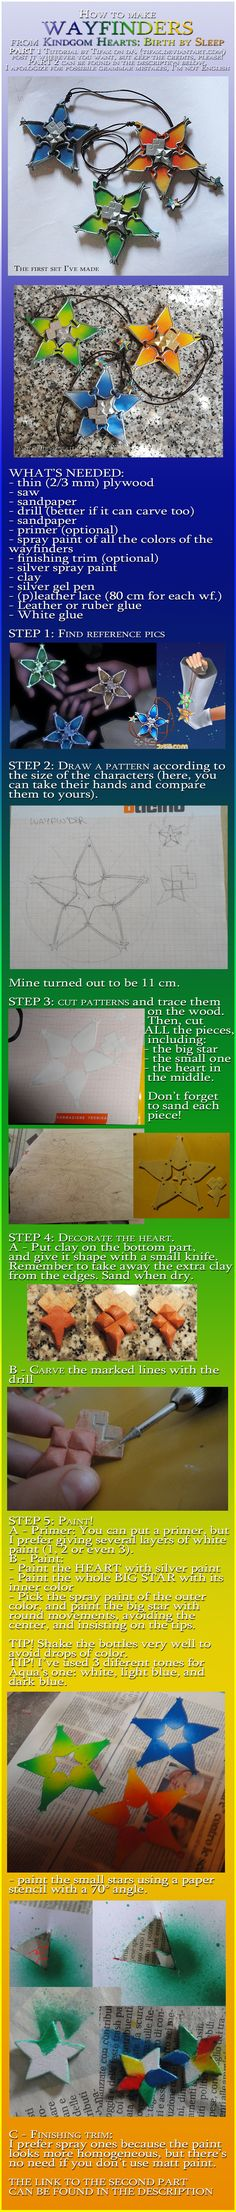 Kingdom Hearts: Wayfinders tutorial Tifax.deviantart.com I will probably NEVER do this, but the thought of actually making one is so cool!